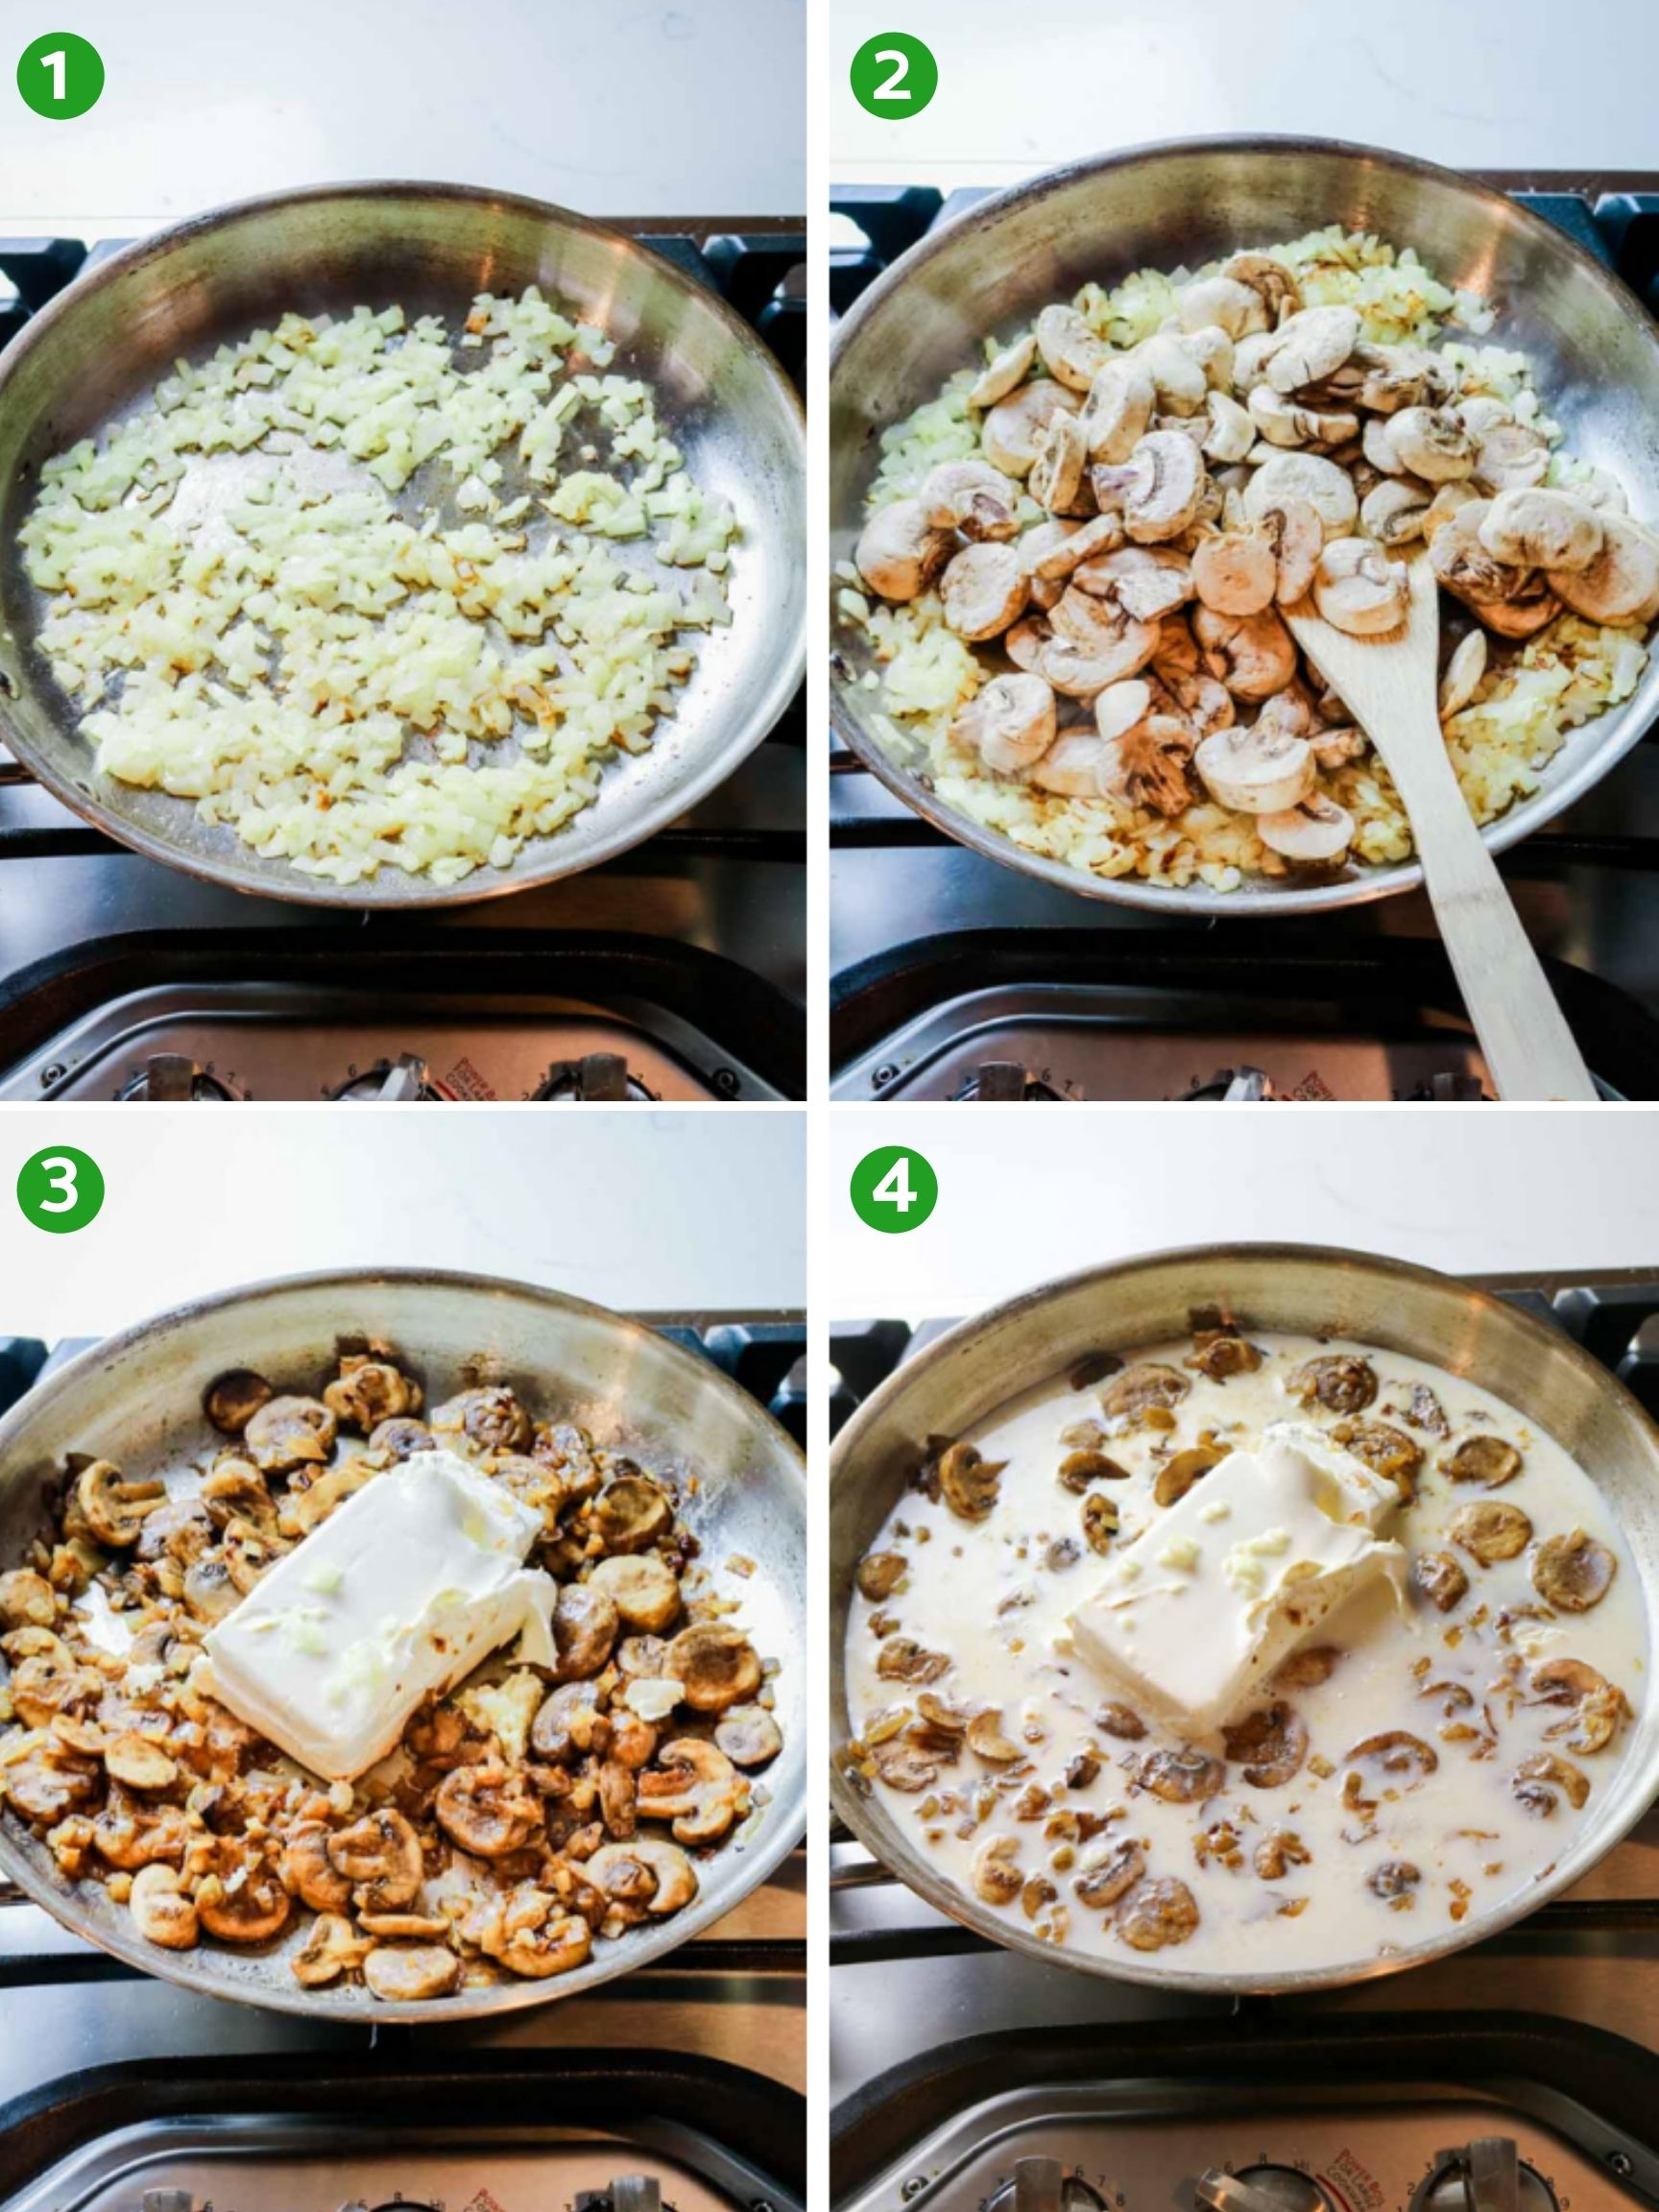 Steps 1 through 4 on how to make the best tuna casserole